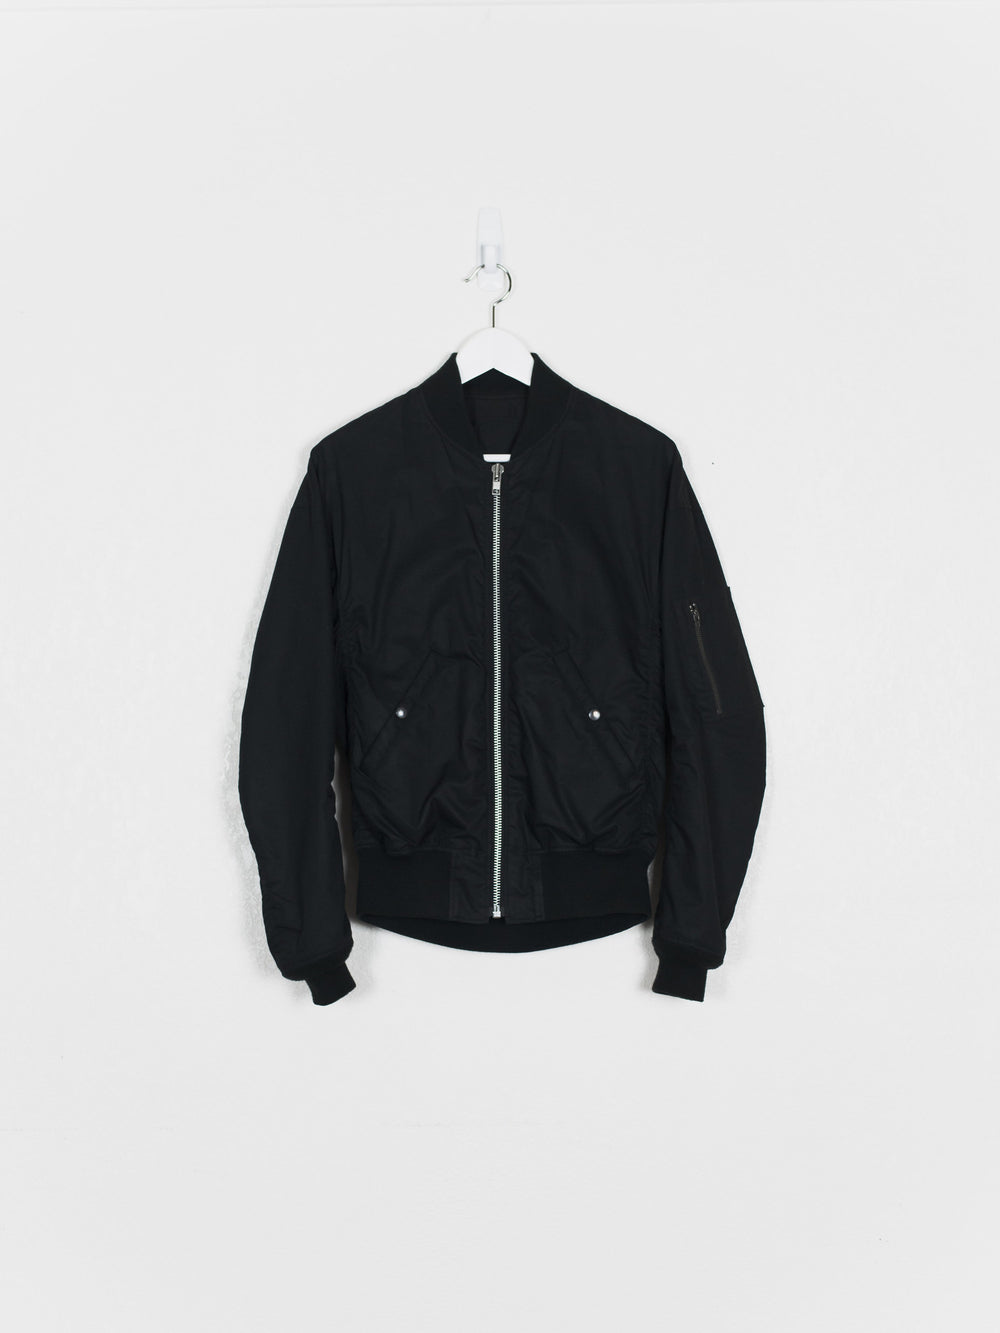 Lad Musician SS10 MA-1 Bomber